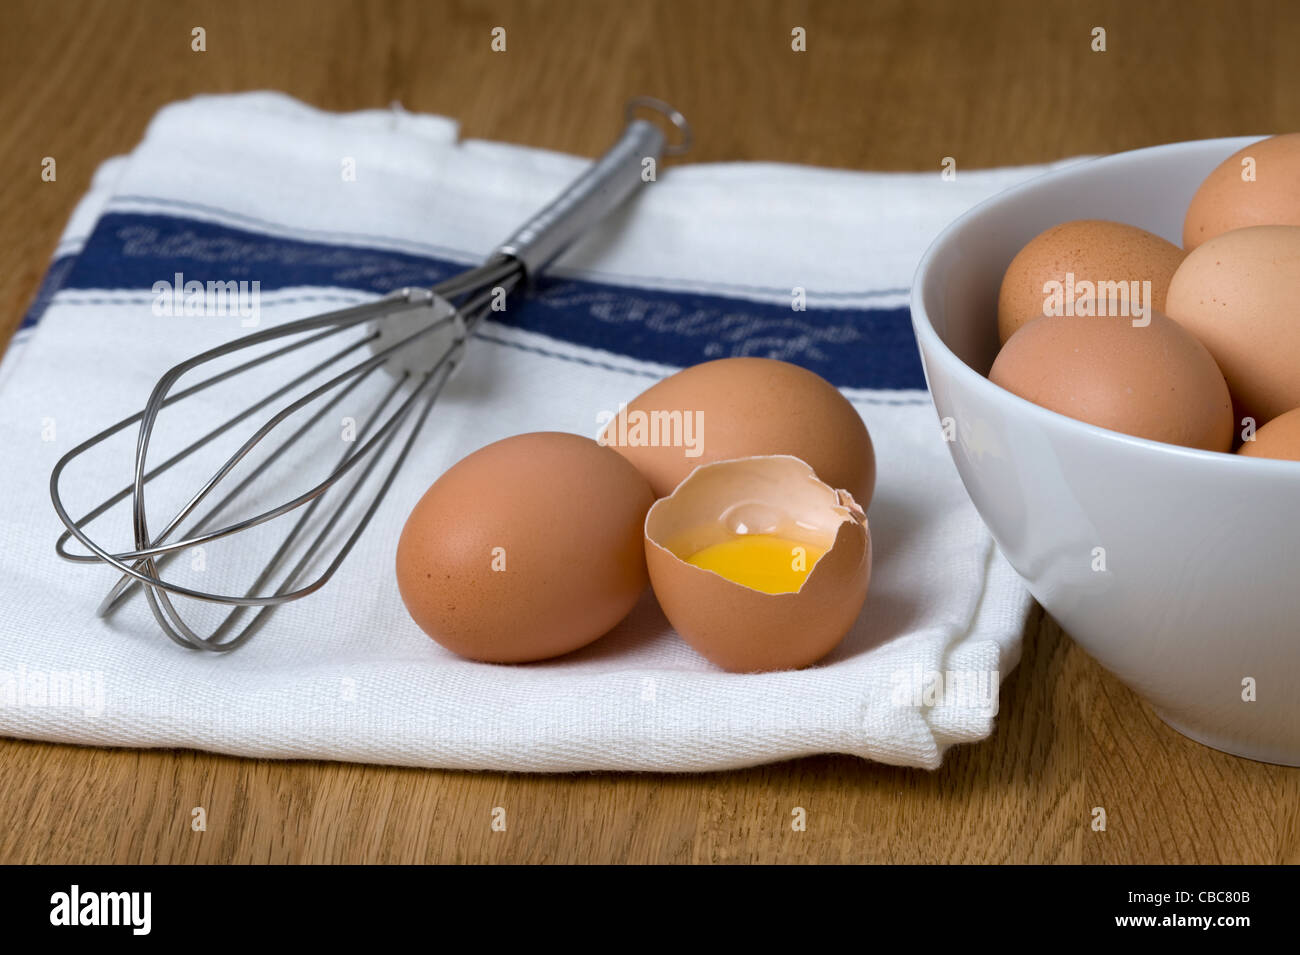 brown hens eggs on a white tea towel with a stainless steel whisk one egg cracked and separated showing egg white - Stock Image